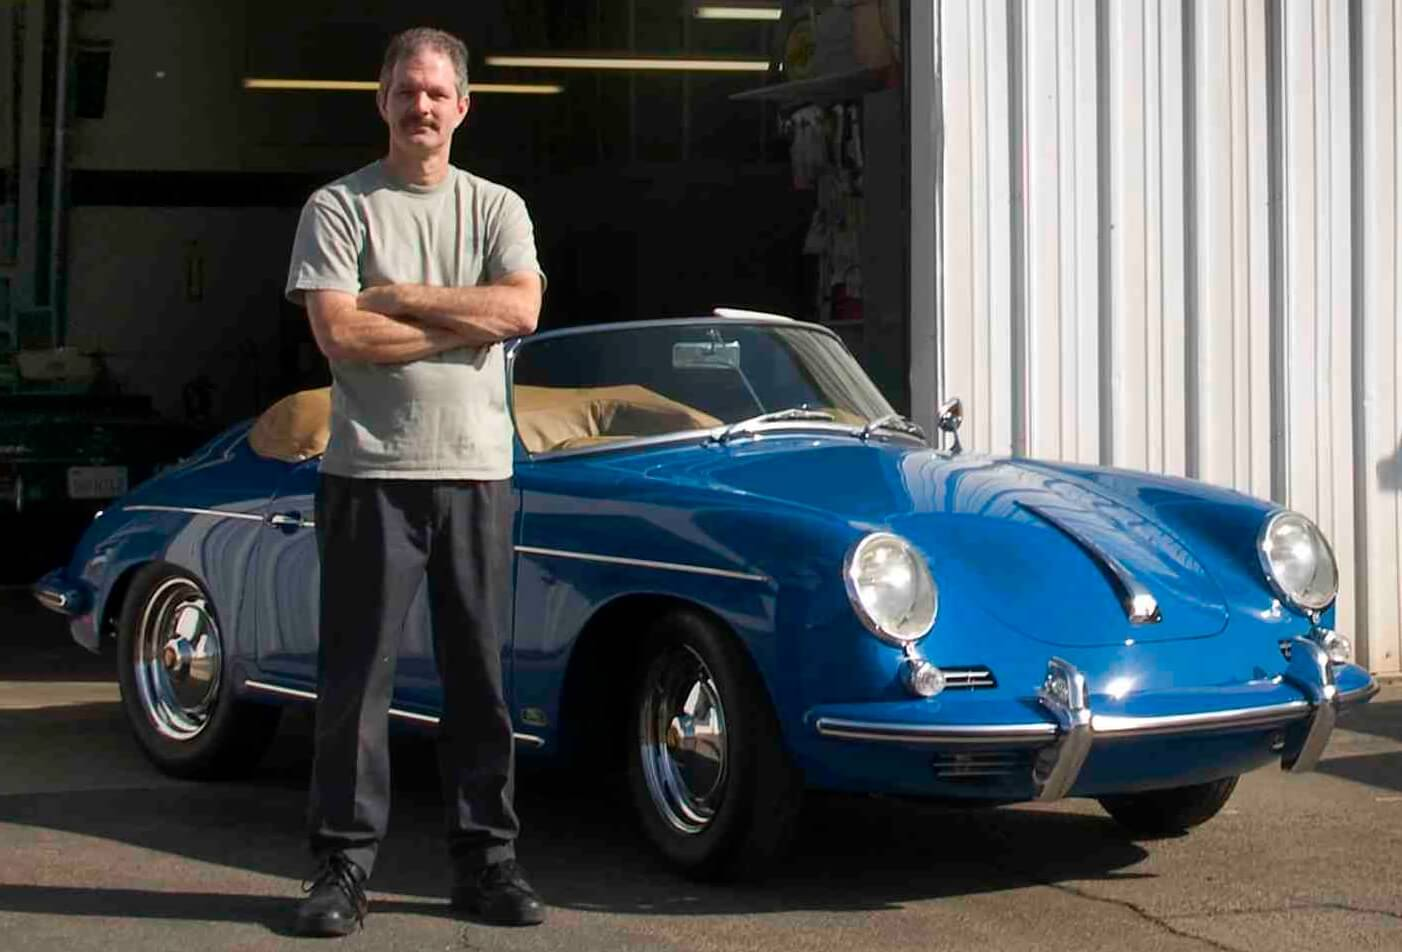 Stitch with a 62 Porsche 356 Roadster